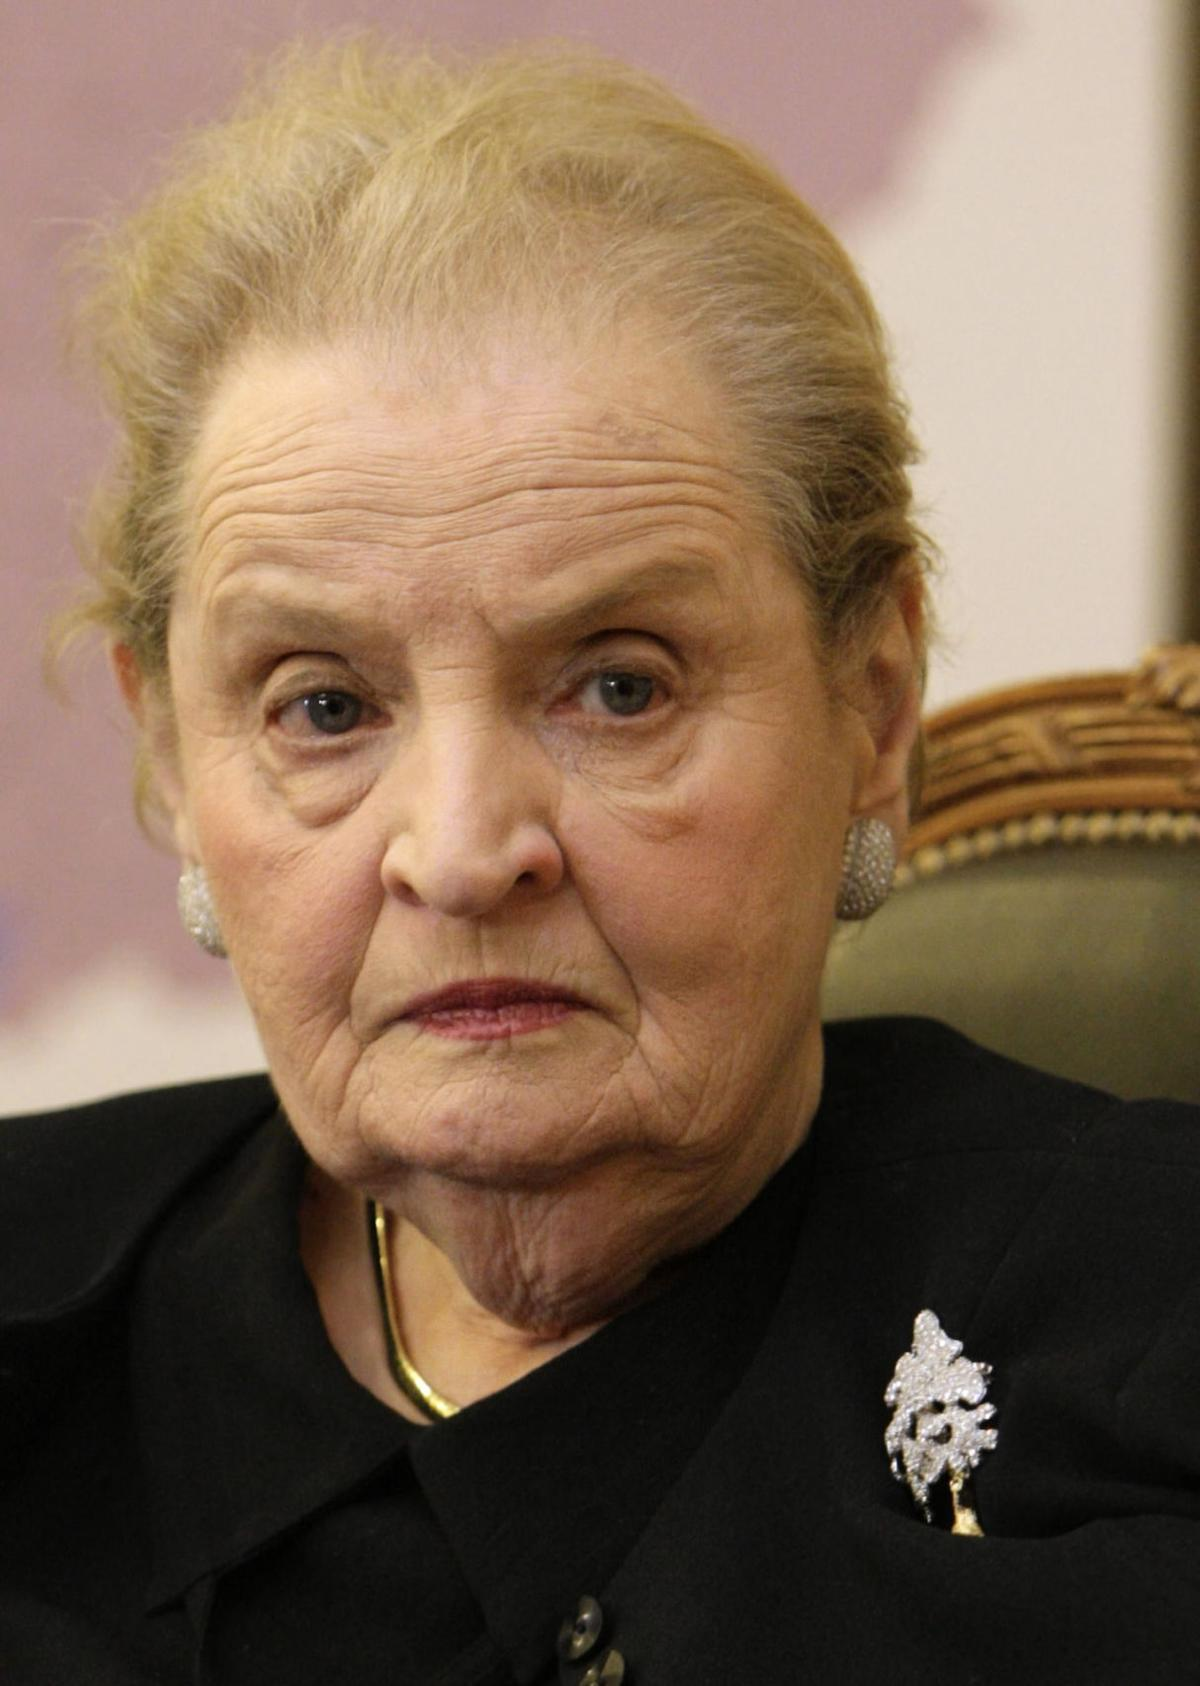 Albright's pins to go on display